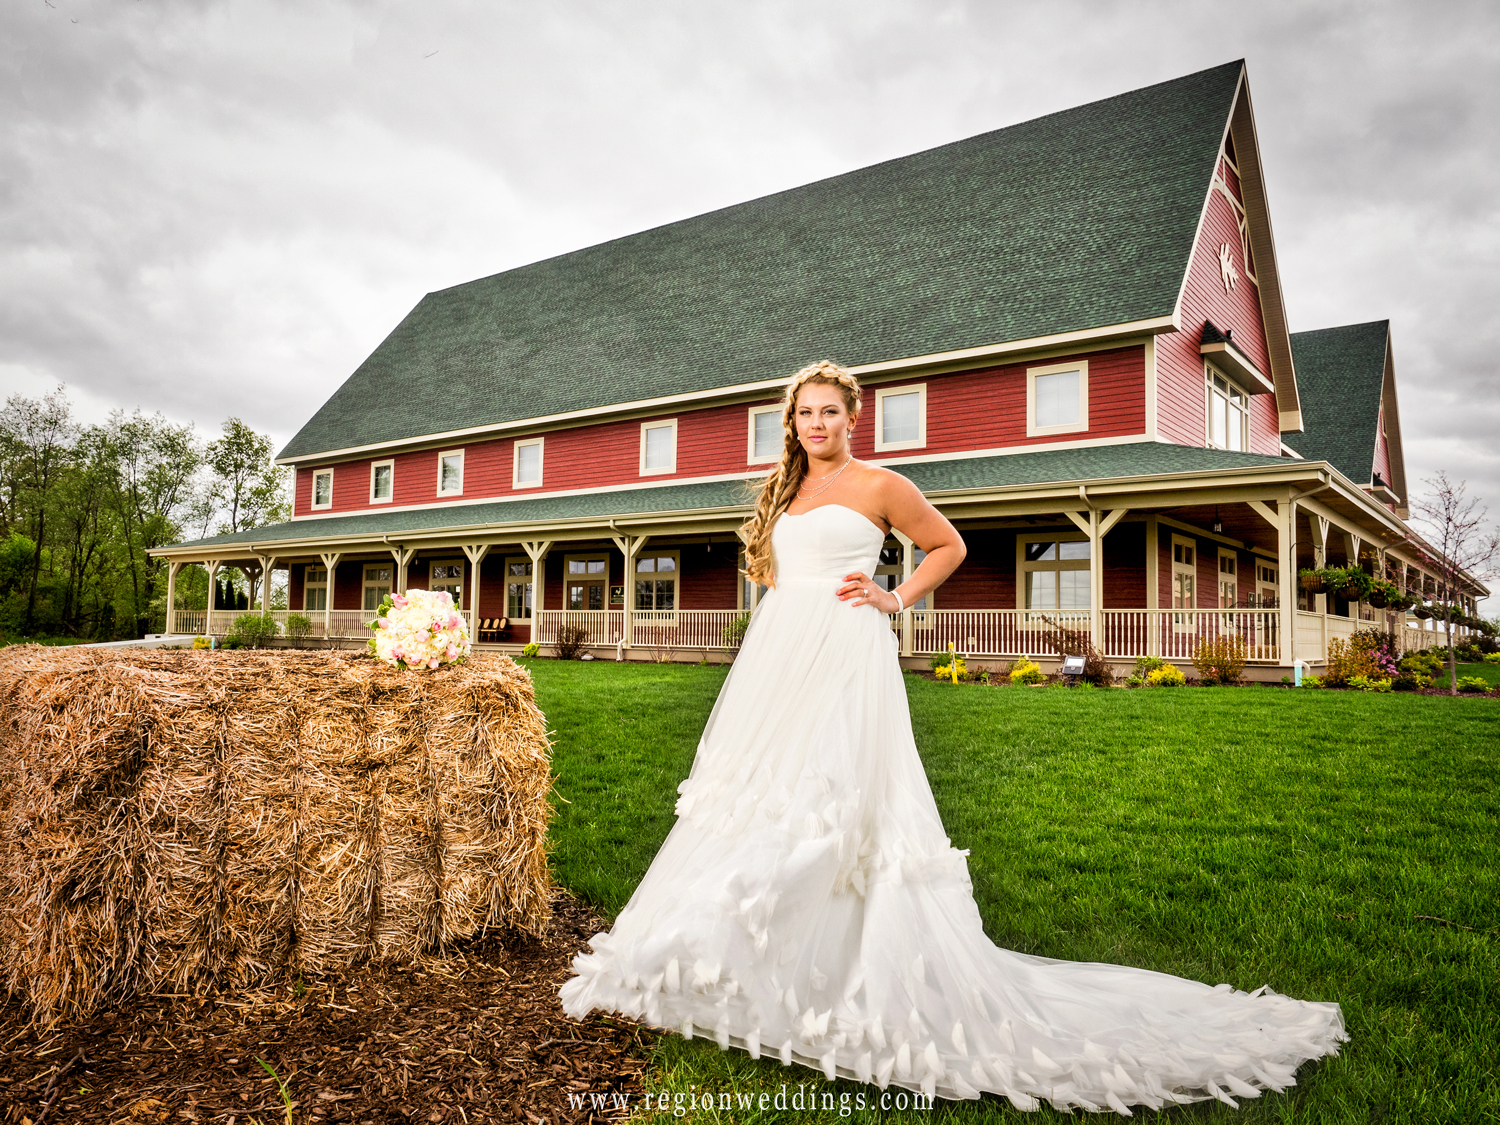 A bride in front of the Farmhouse Restaurant with her bouquet of flowers on a bale of hay.